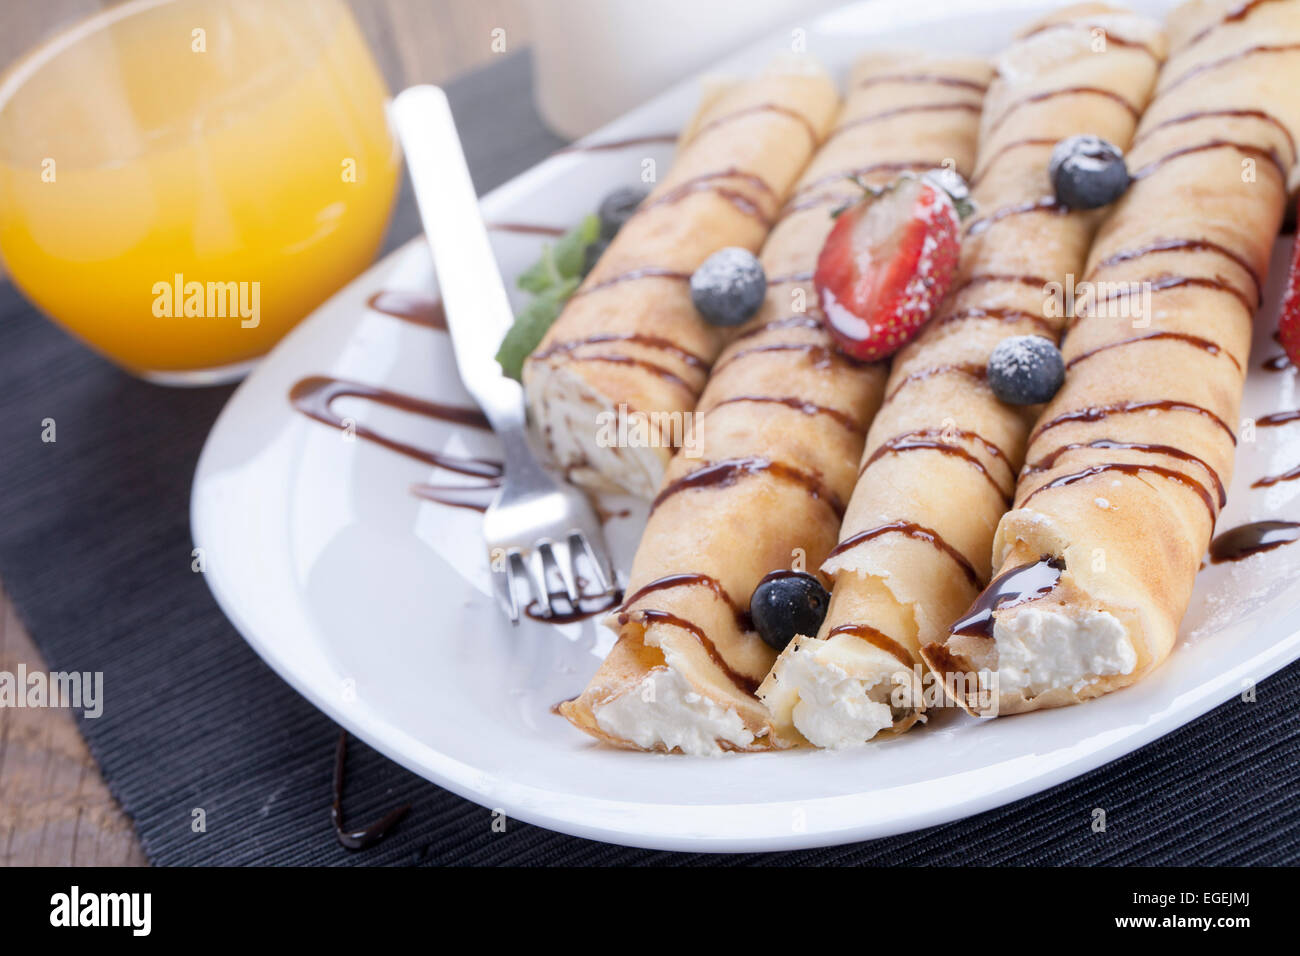 Delicious sweet rolled pancakes on a plate with fresh fruits - Stock Image